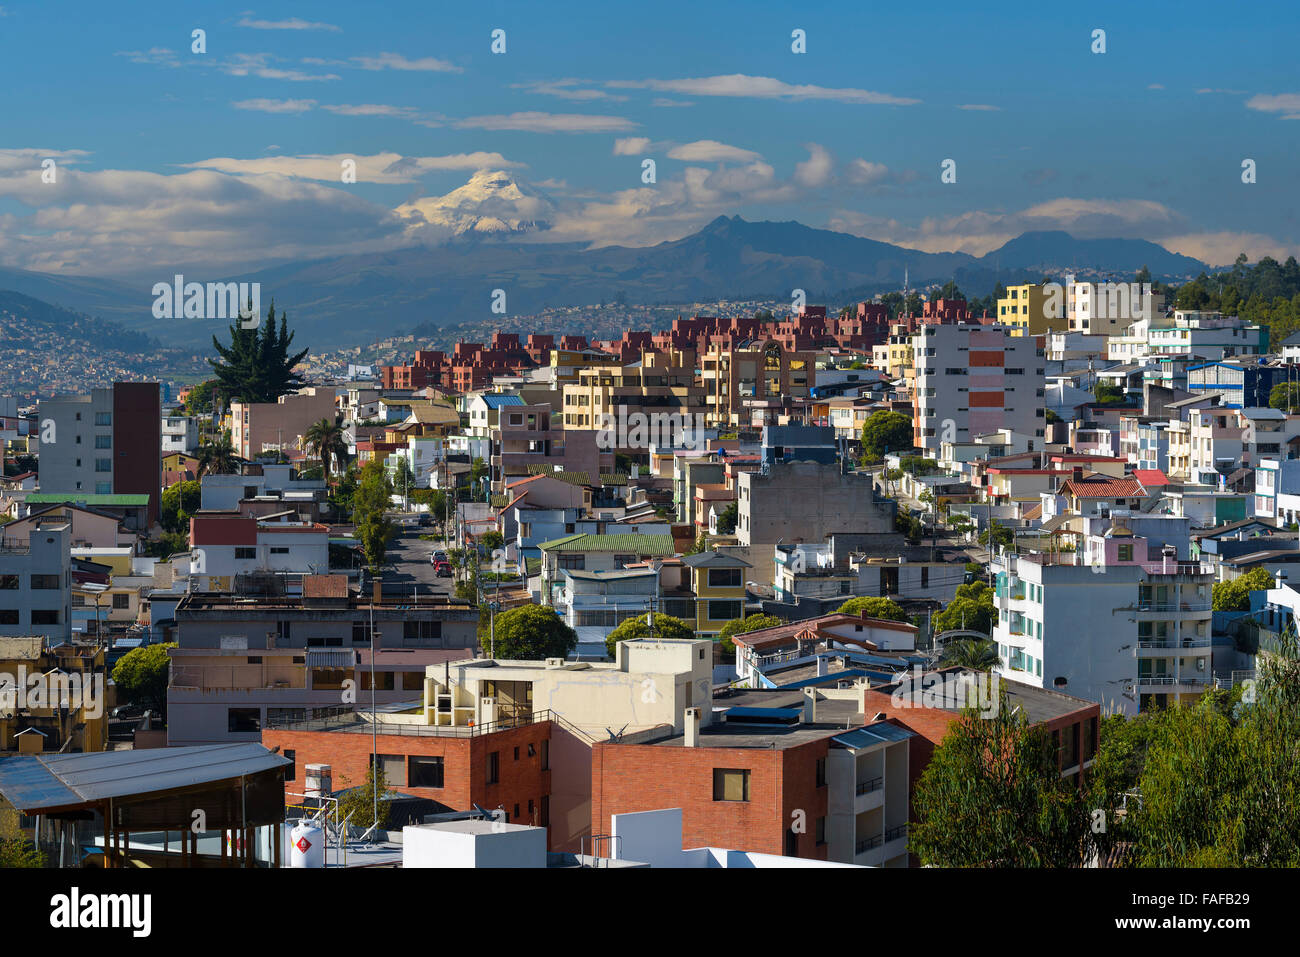 Quito am Morgen hinten Mt. Cotopaxi, Quito, Provinz Pichincha, Ecuador Stockbild